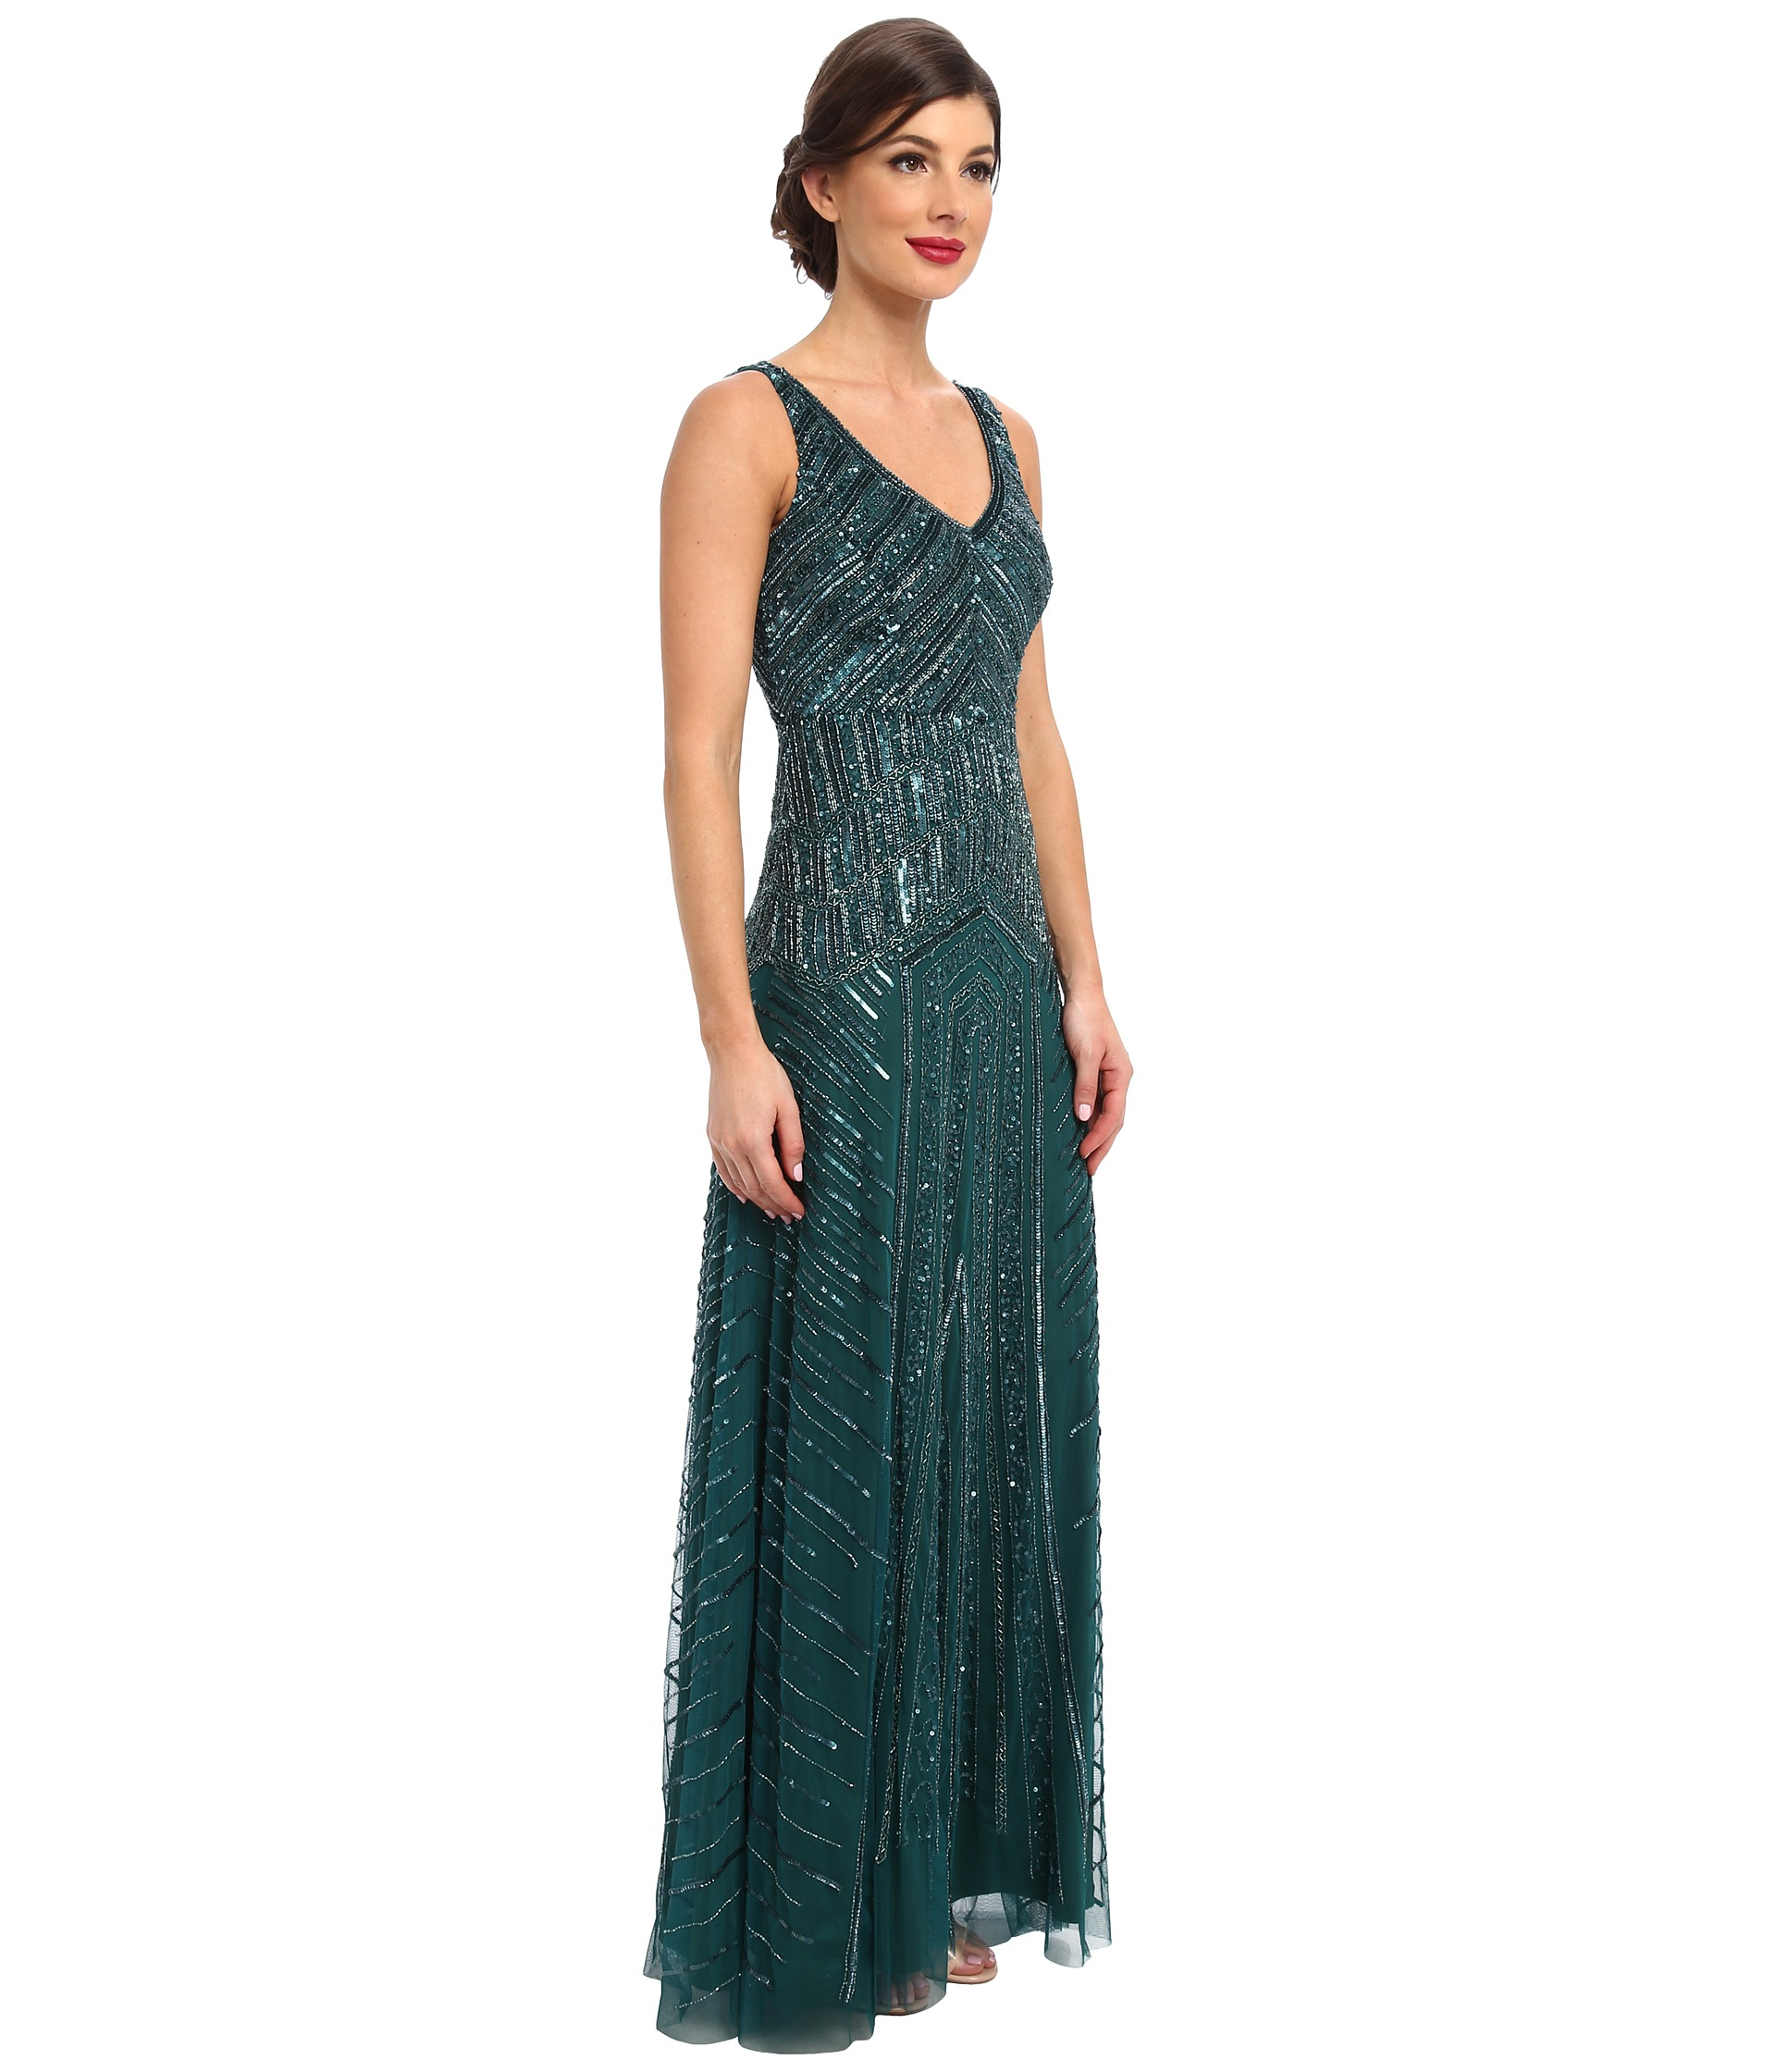 Lyst - Adrianna Papell Long Beaded Dress in Green